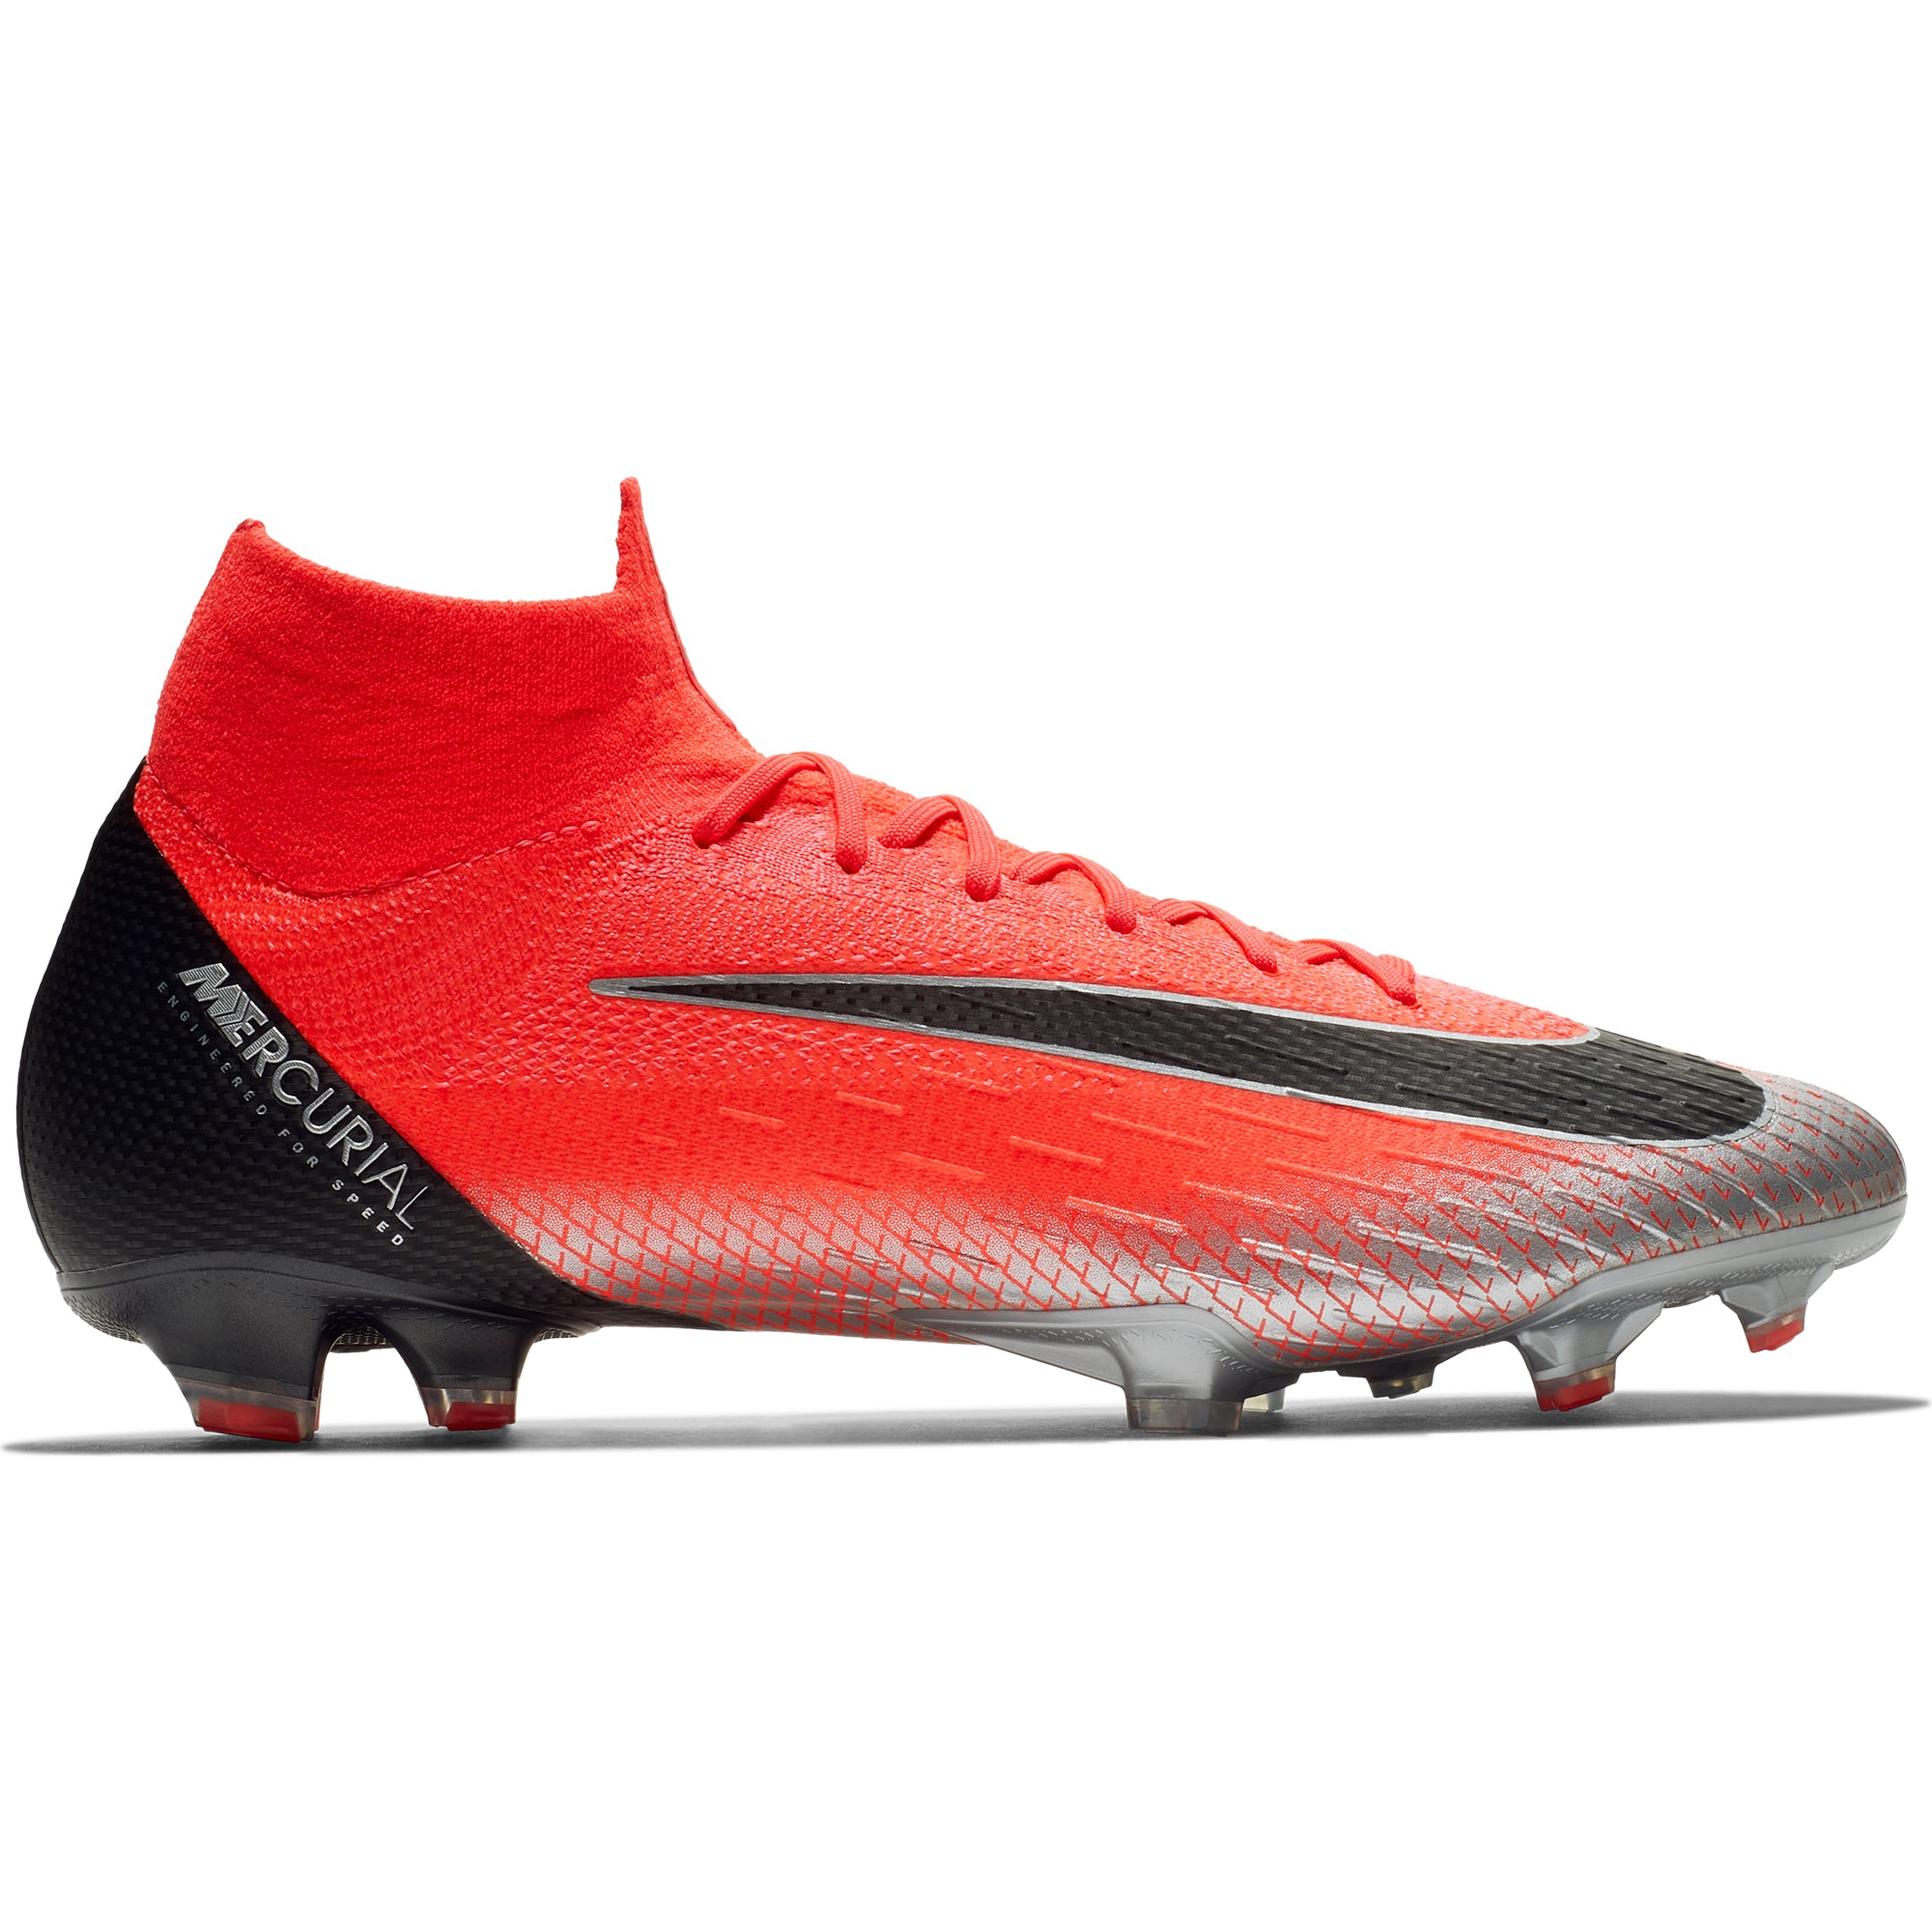 246b8b2a638 Men s Mercurial Superfly 360 Elite CR7 FG – Gazelle Sports Soccer